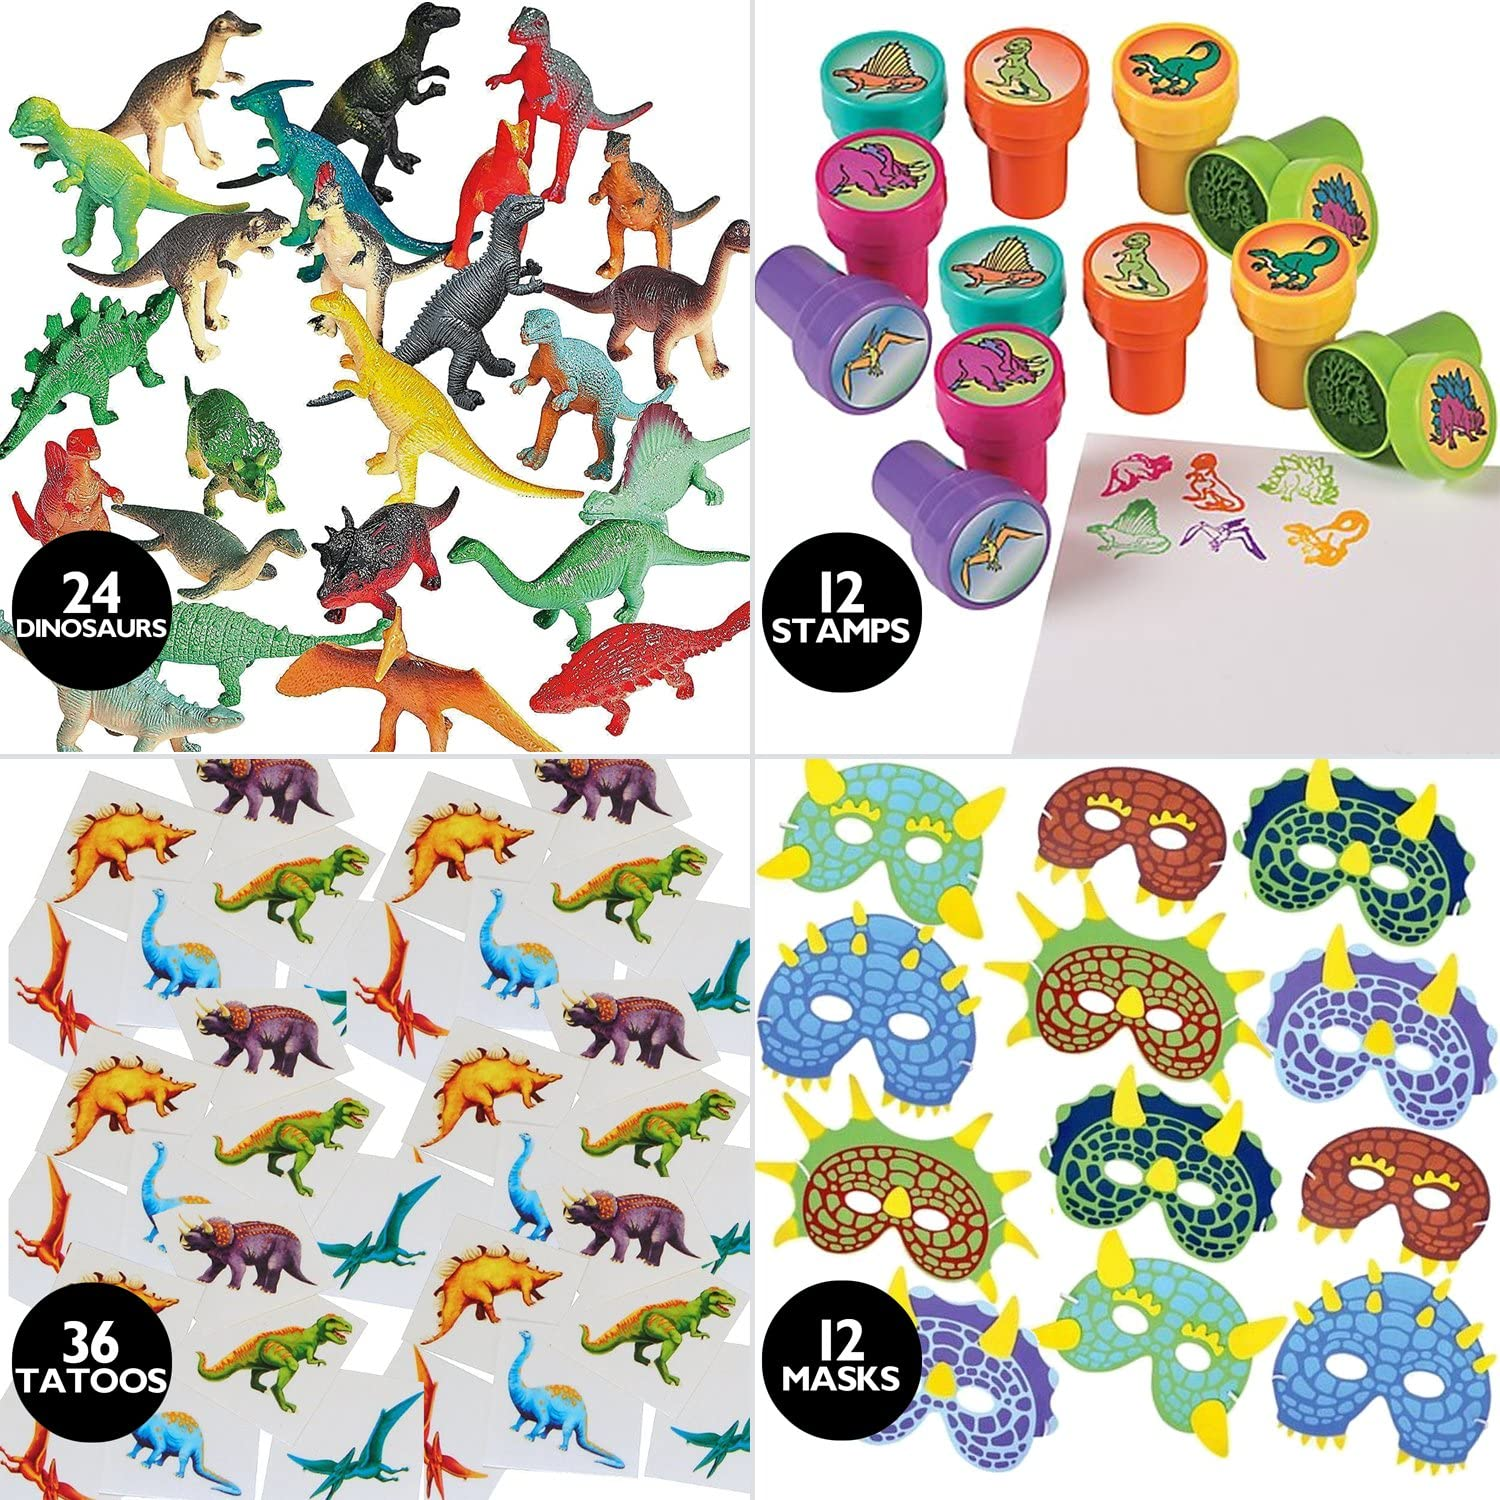 Holiday Decor Gifts 84 Piece Kids Dinosaur Toy Kit - Includes Mini Figures Masks Stamps and Sticker Tattoos (Great As Dinosaur Party Supplies & Dinosaur Party Favors)